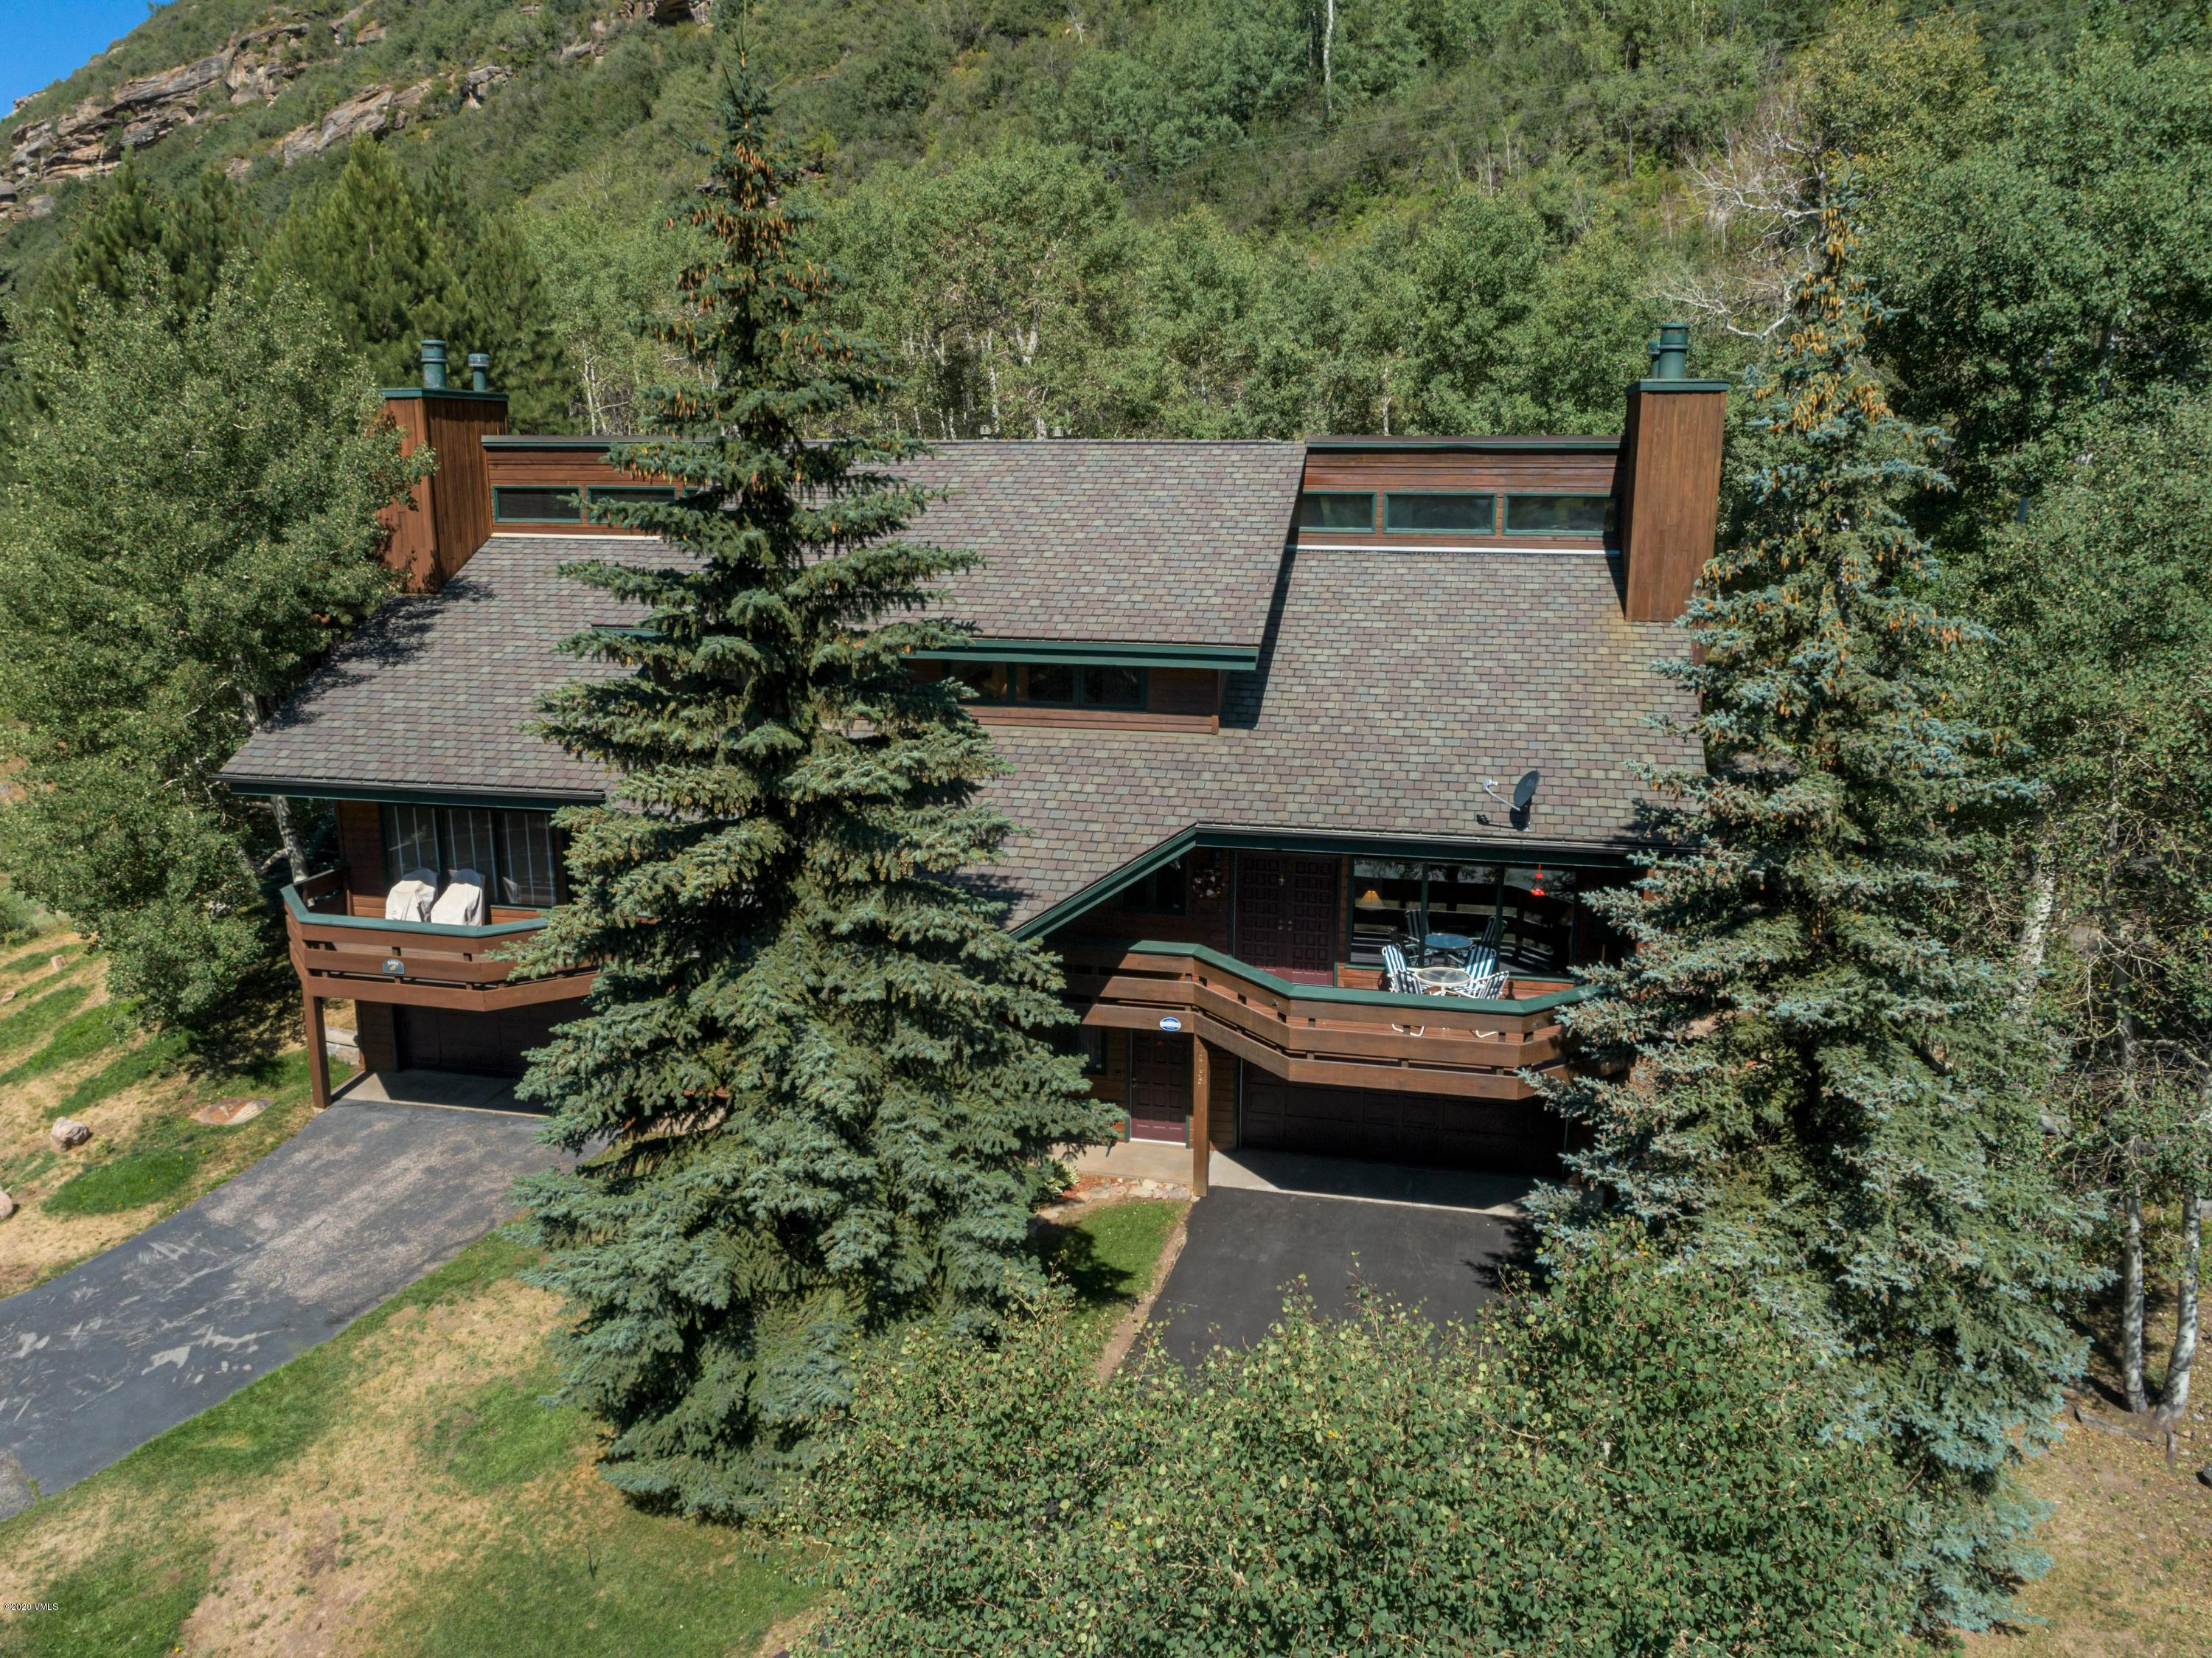 Located on a quiet street in the Booth Creek neighborhood of East Vail, this private, hillside duplex bordering public lands has 4 bedrooms, 3 1/2 baths and a 2-car garage. This exceptionally maintained home is landscaped with stunning alpine gardens and a patio in the backyard for enjoying the mountain scenery. The beautifully renovated large kitchen has uplighting above the cabinets; downlighting onto the granite countertops; a breakfast island that seats two chairs as well as a dry bar with a granite countertop and backsplash, wine cooler and glass cabinet. You are sure to enjoy the views of the alpine gardens from the kitchen and dining area.  The comfortable living area has vaulted wood ceilings and a wood burning fireplace with moss rock surround and custom-made glass doors. The numerous windows offer sunlight and beautiful views of the surrounding mountains. The front deck is accessed from the living area and is a perfect place to unwind and enjoy the mountain views. As well, you will find a bedroom and powder room on the main level. The master bedroom and bath are located on the third level along with two bedrooms that are connected by a 3/4 ''Jack 'n Jill'' bathroom with two vanities. The master bedroom has vaulted wood ceilings, a walk-in closet with custom built-ins and views of the alpine gardens and surrounding hillside. The master bathroom has a double vanity with rough edge granite countertops, in-floor heating and also overlooks the backyard hillside and alpine gardens. The lower level houses the 2-car garage, a large laundry room with sink, a separate utility with work bench area, a dry sauna, a 3/4 bathroom and a large mud room with a built-in boot and glove dryer. Outside there is a beautiful stone walkway winding its way through the alpine gardens going up to the private back patio, making for quiet morning coffees and conversation. The roof was recently replaced with Grand Manor, slate-like shingles and the driveway was recently redone.